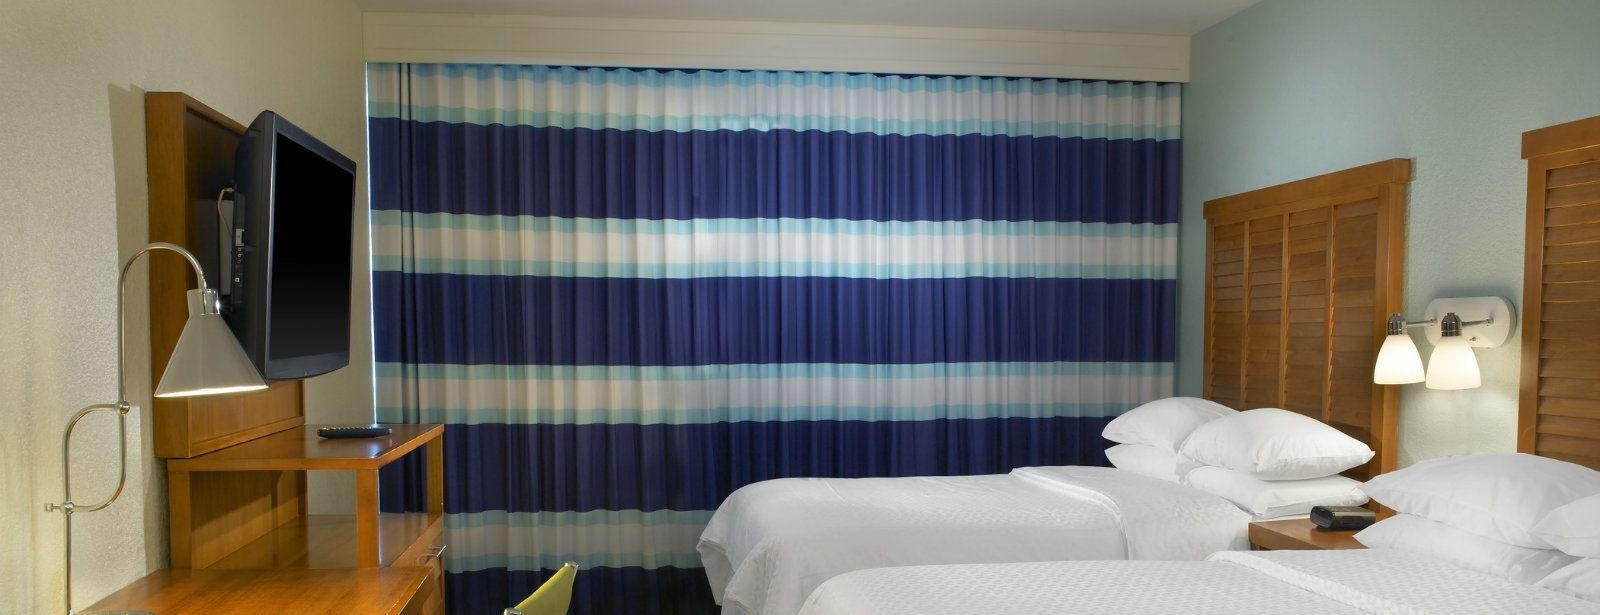 Miami Beach Accommodations - Accessible Room